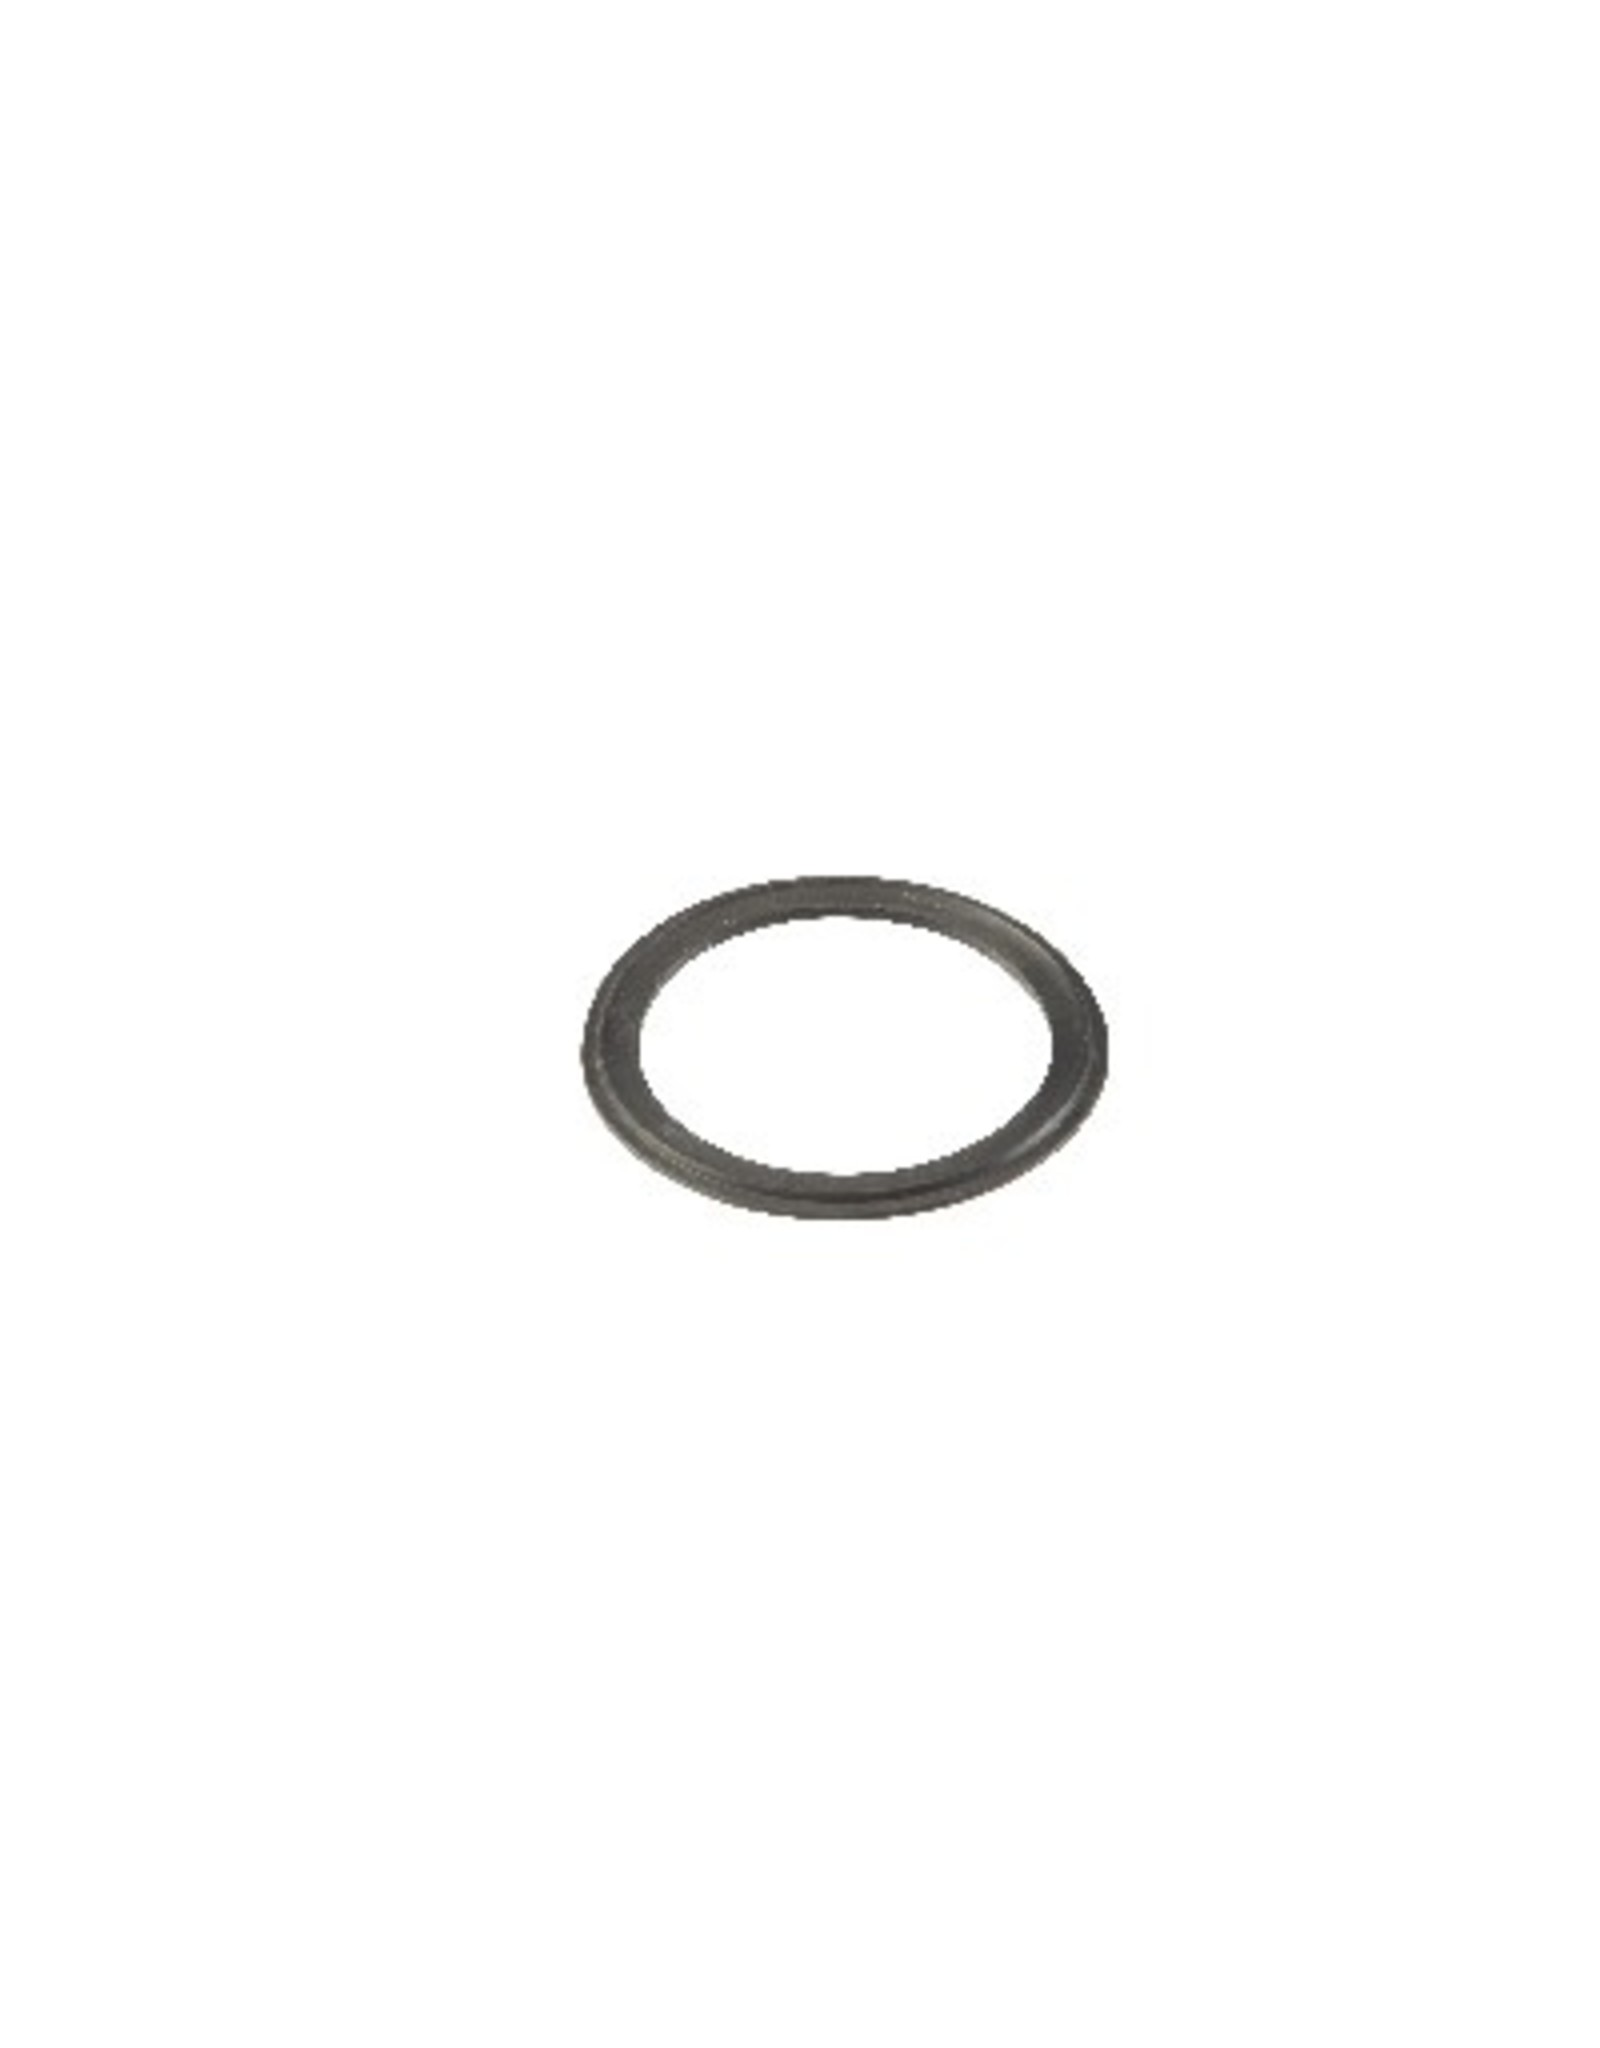 ubbink Dichtingsring  - voor AE34C Ø75/63 - Air Excellent Circular